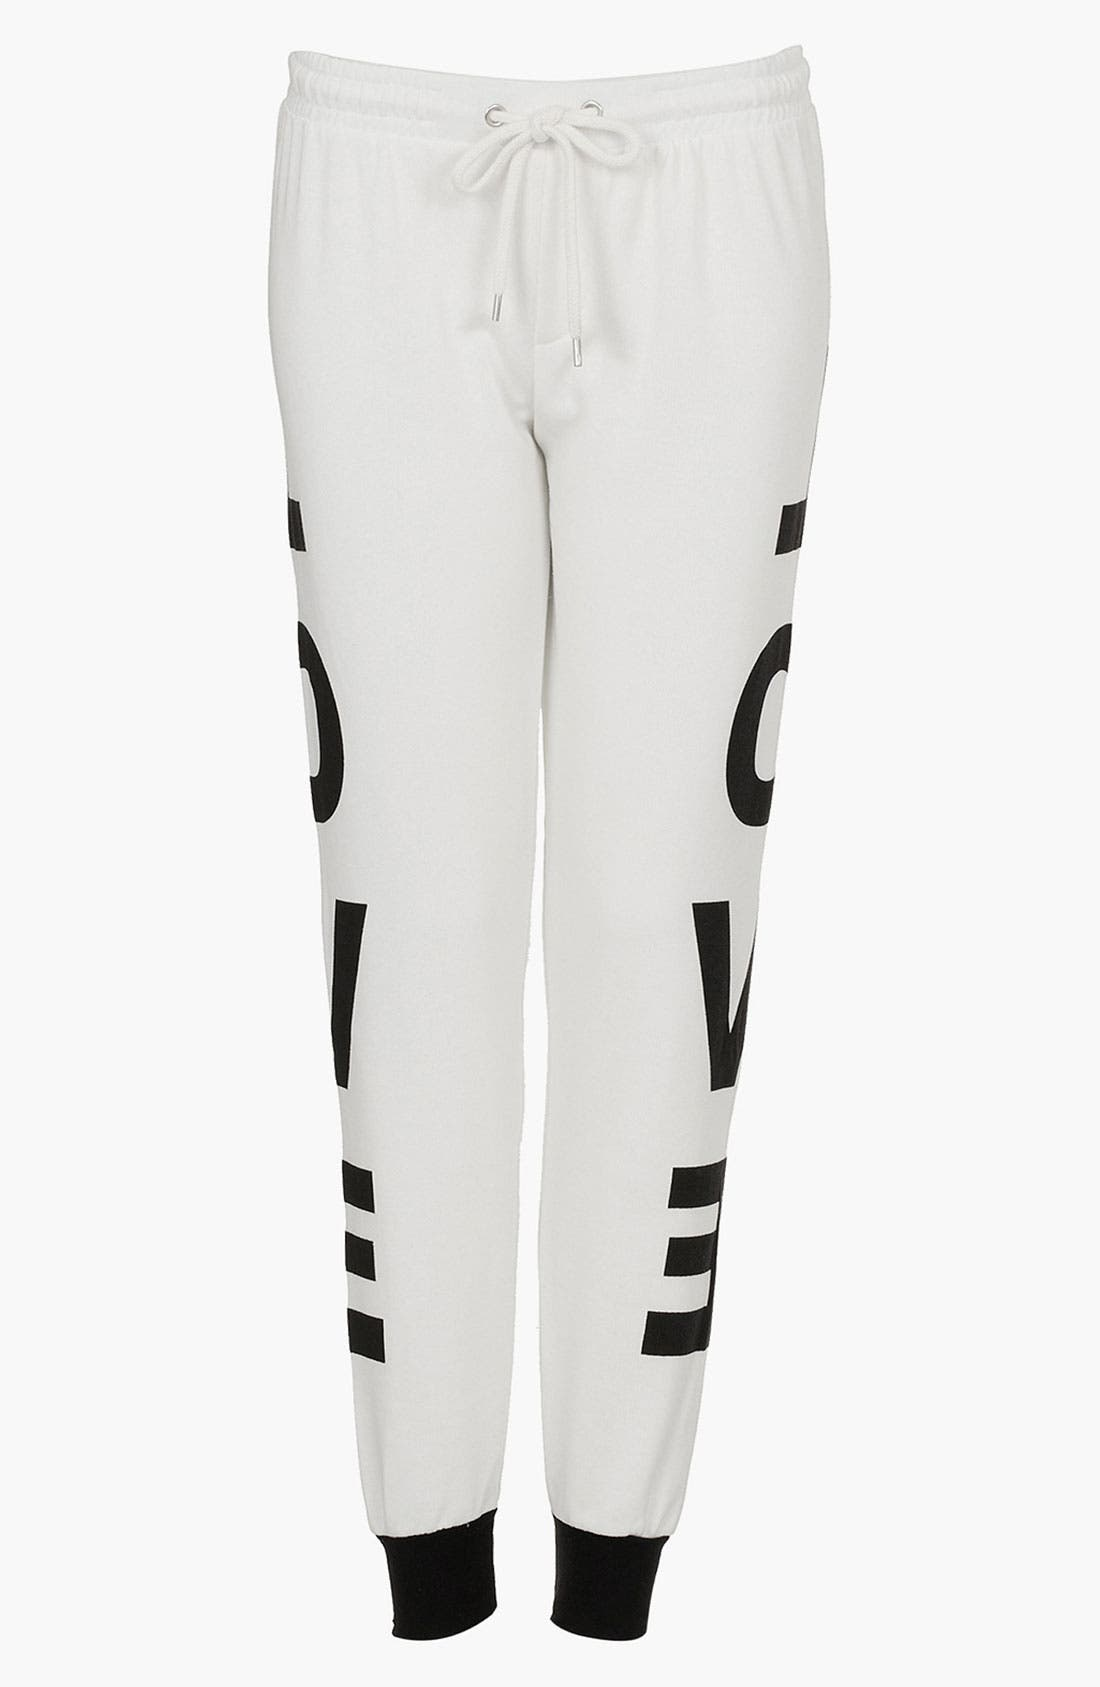 Main Image - Topshop 'Love' Graphic Tapered Sweatpants